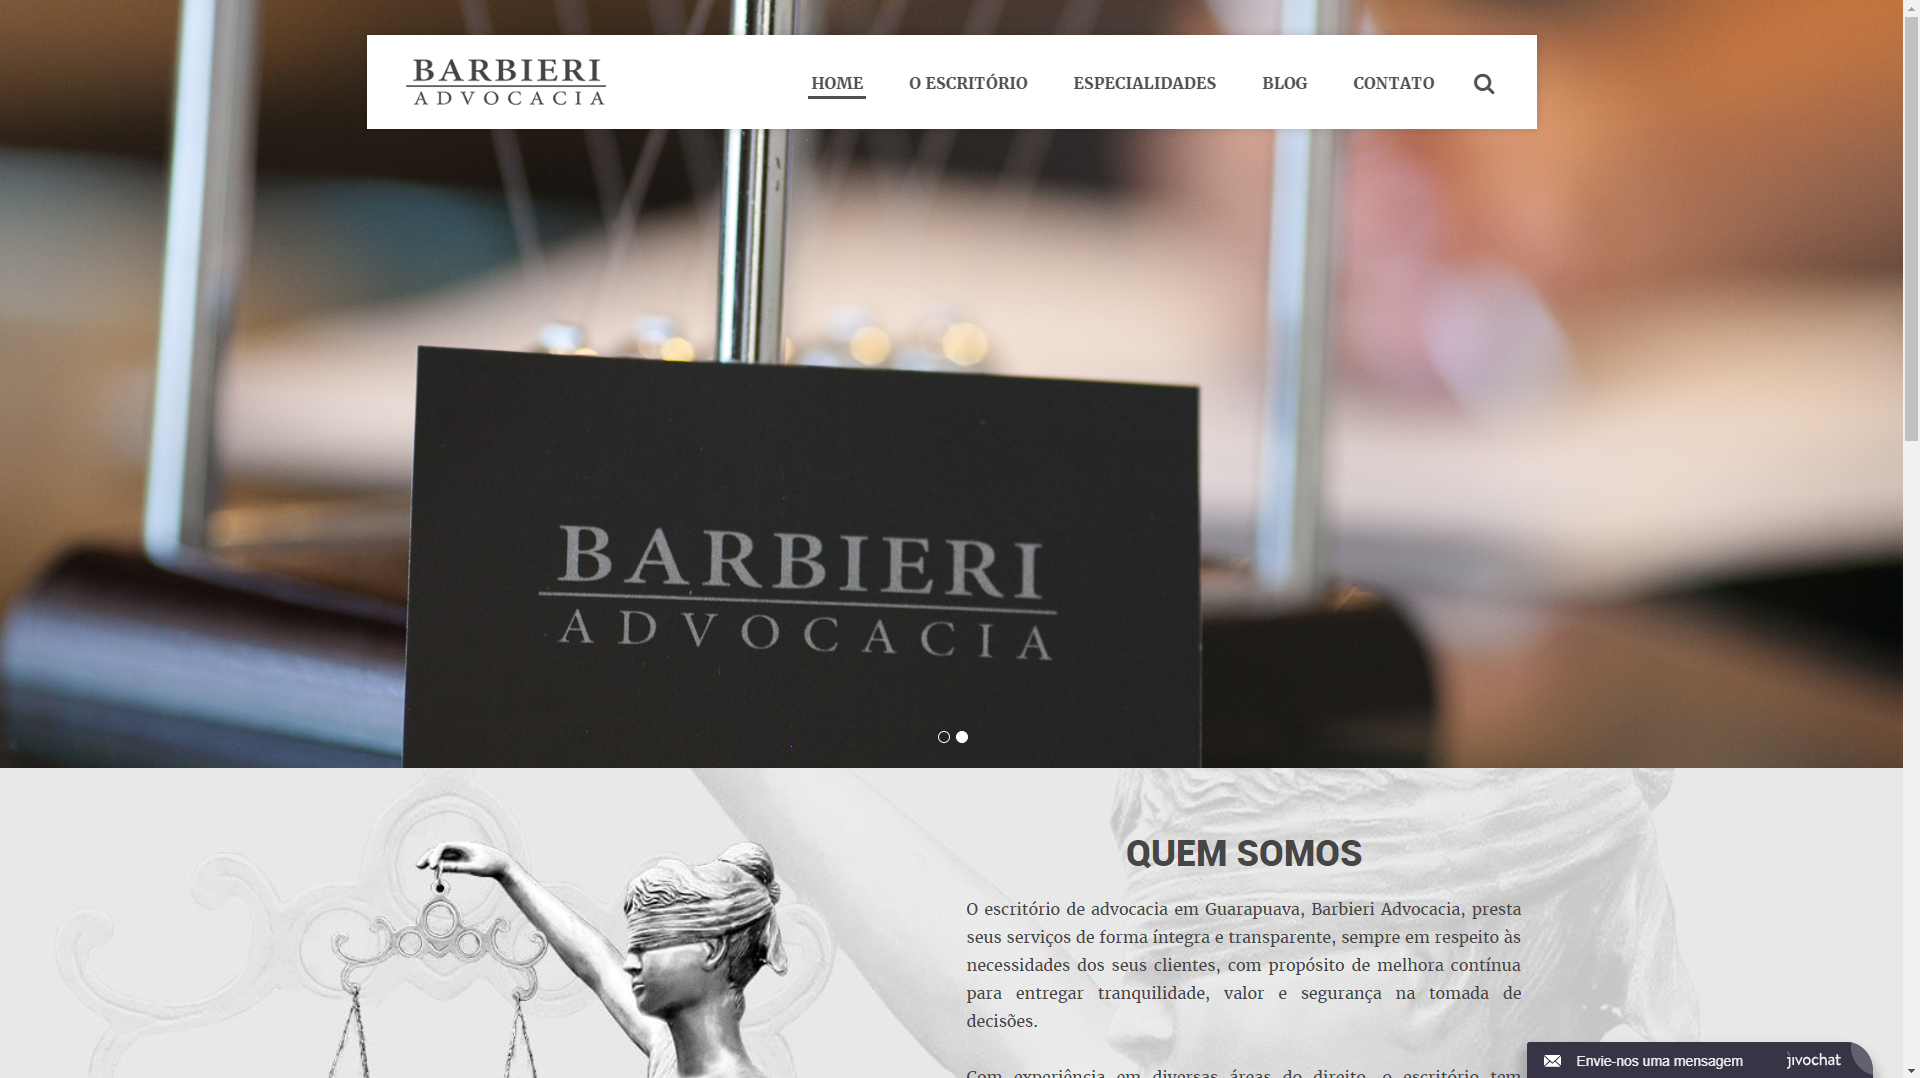 Barbieri Advocacia home